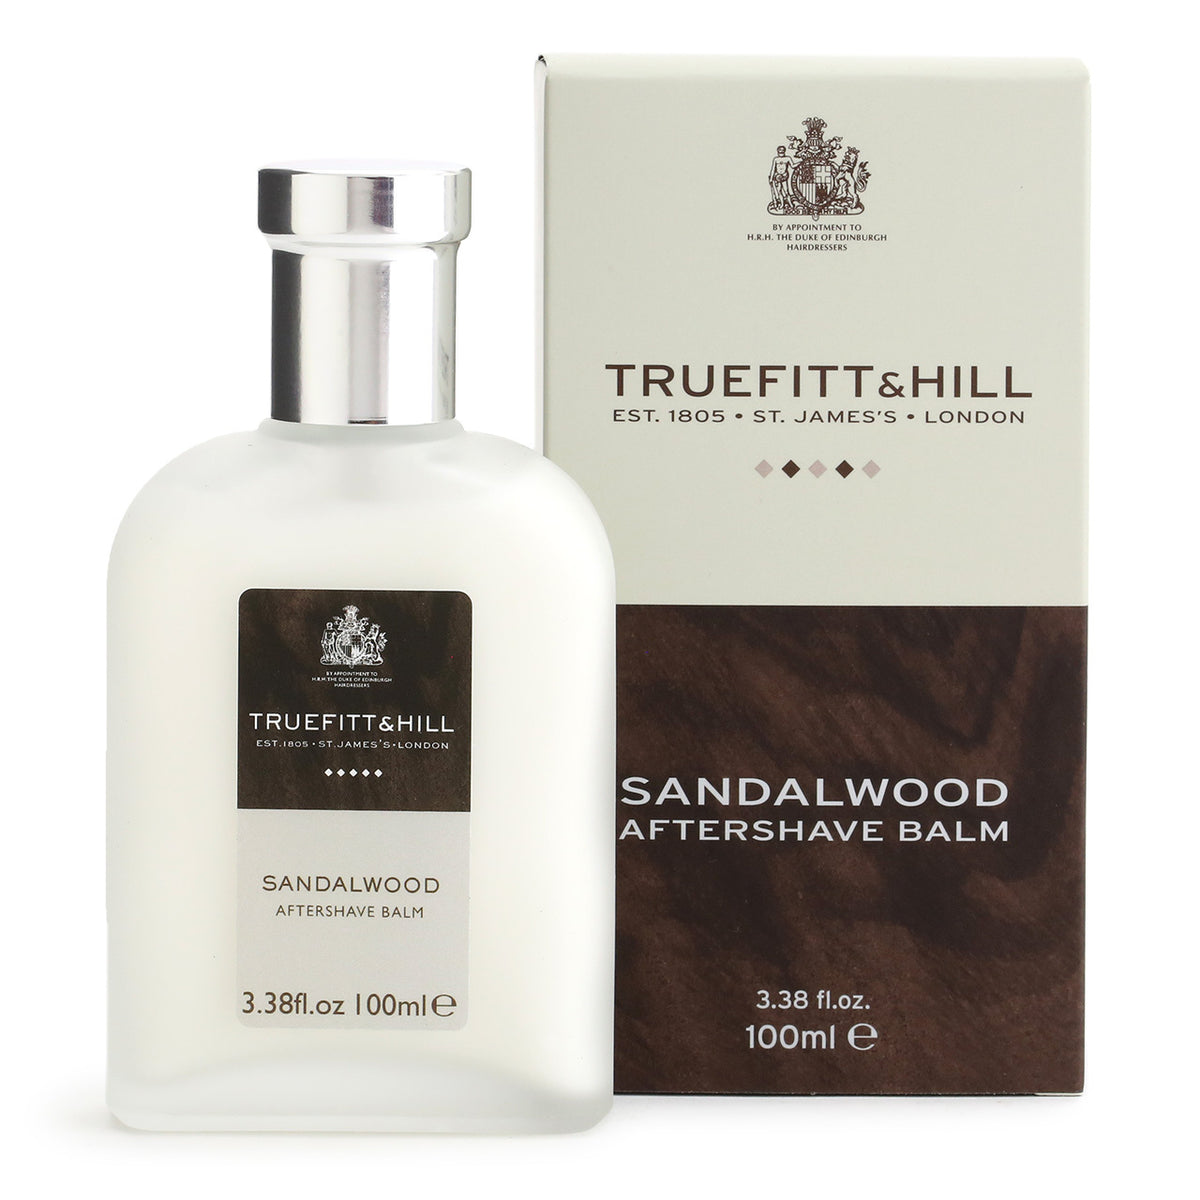 Truefitt & Hill Aftershave Balm 100ml - Sandalwood